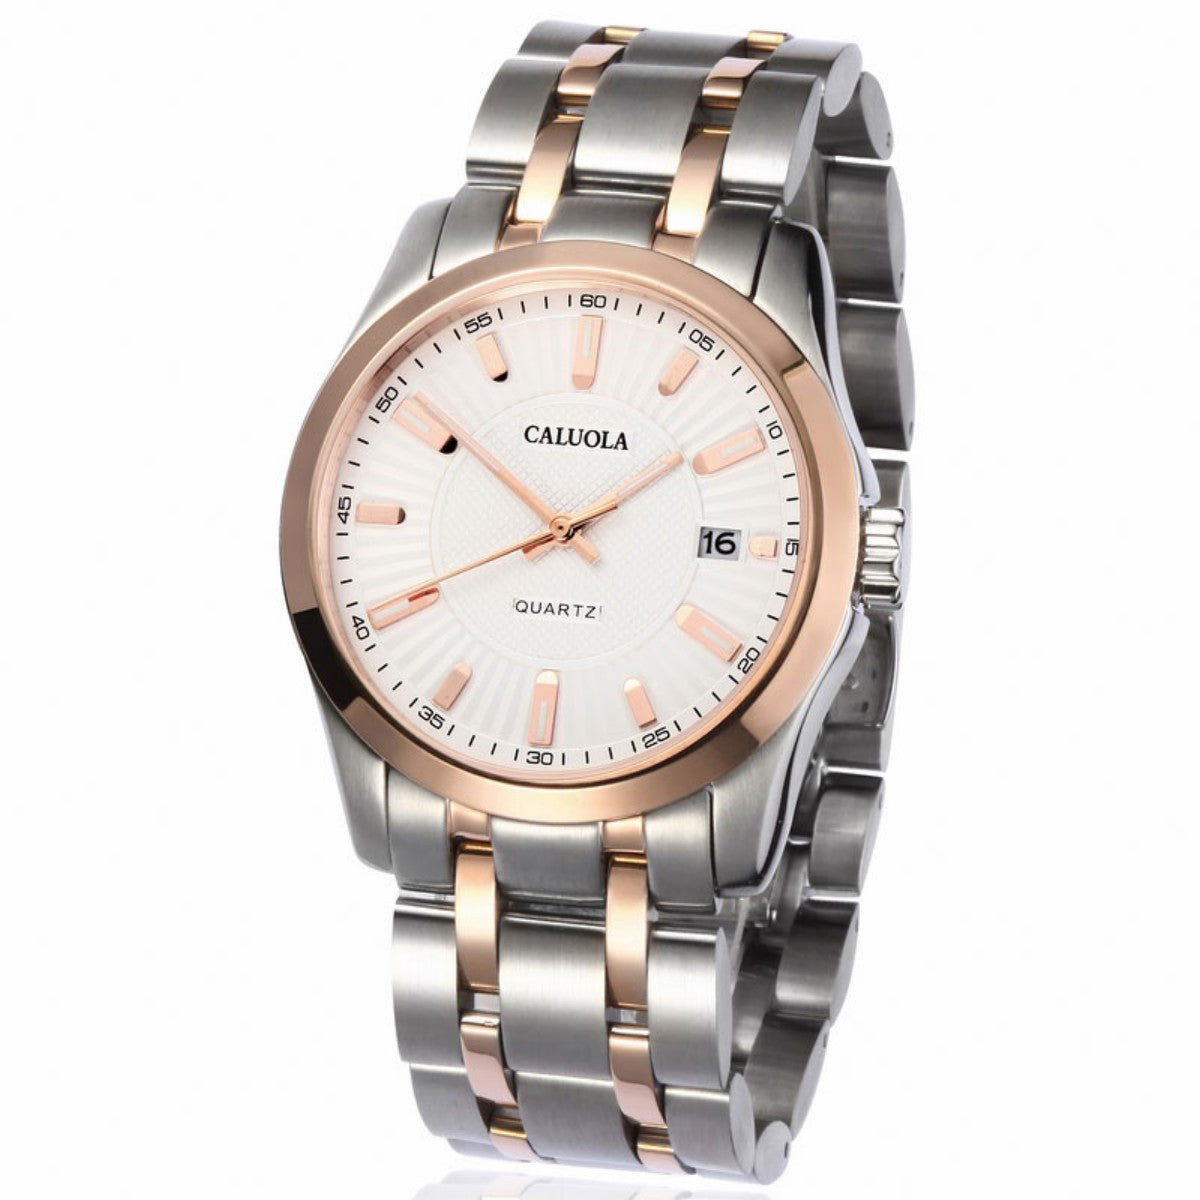 Caluola Fashion Sport Watches Mens Quartz Watch with Date CA1005G